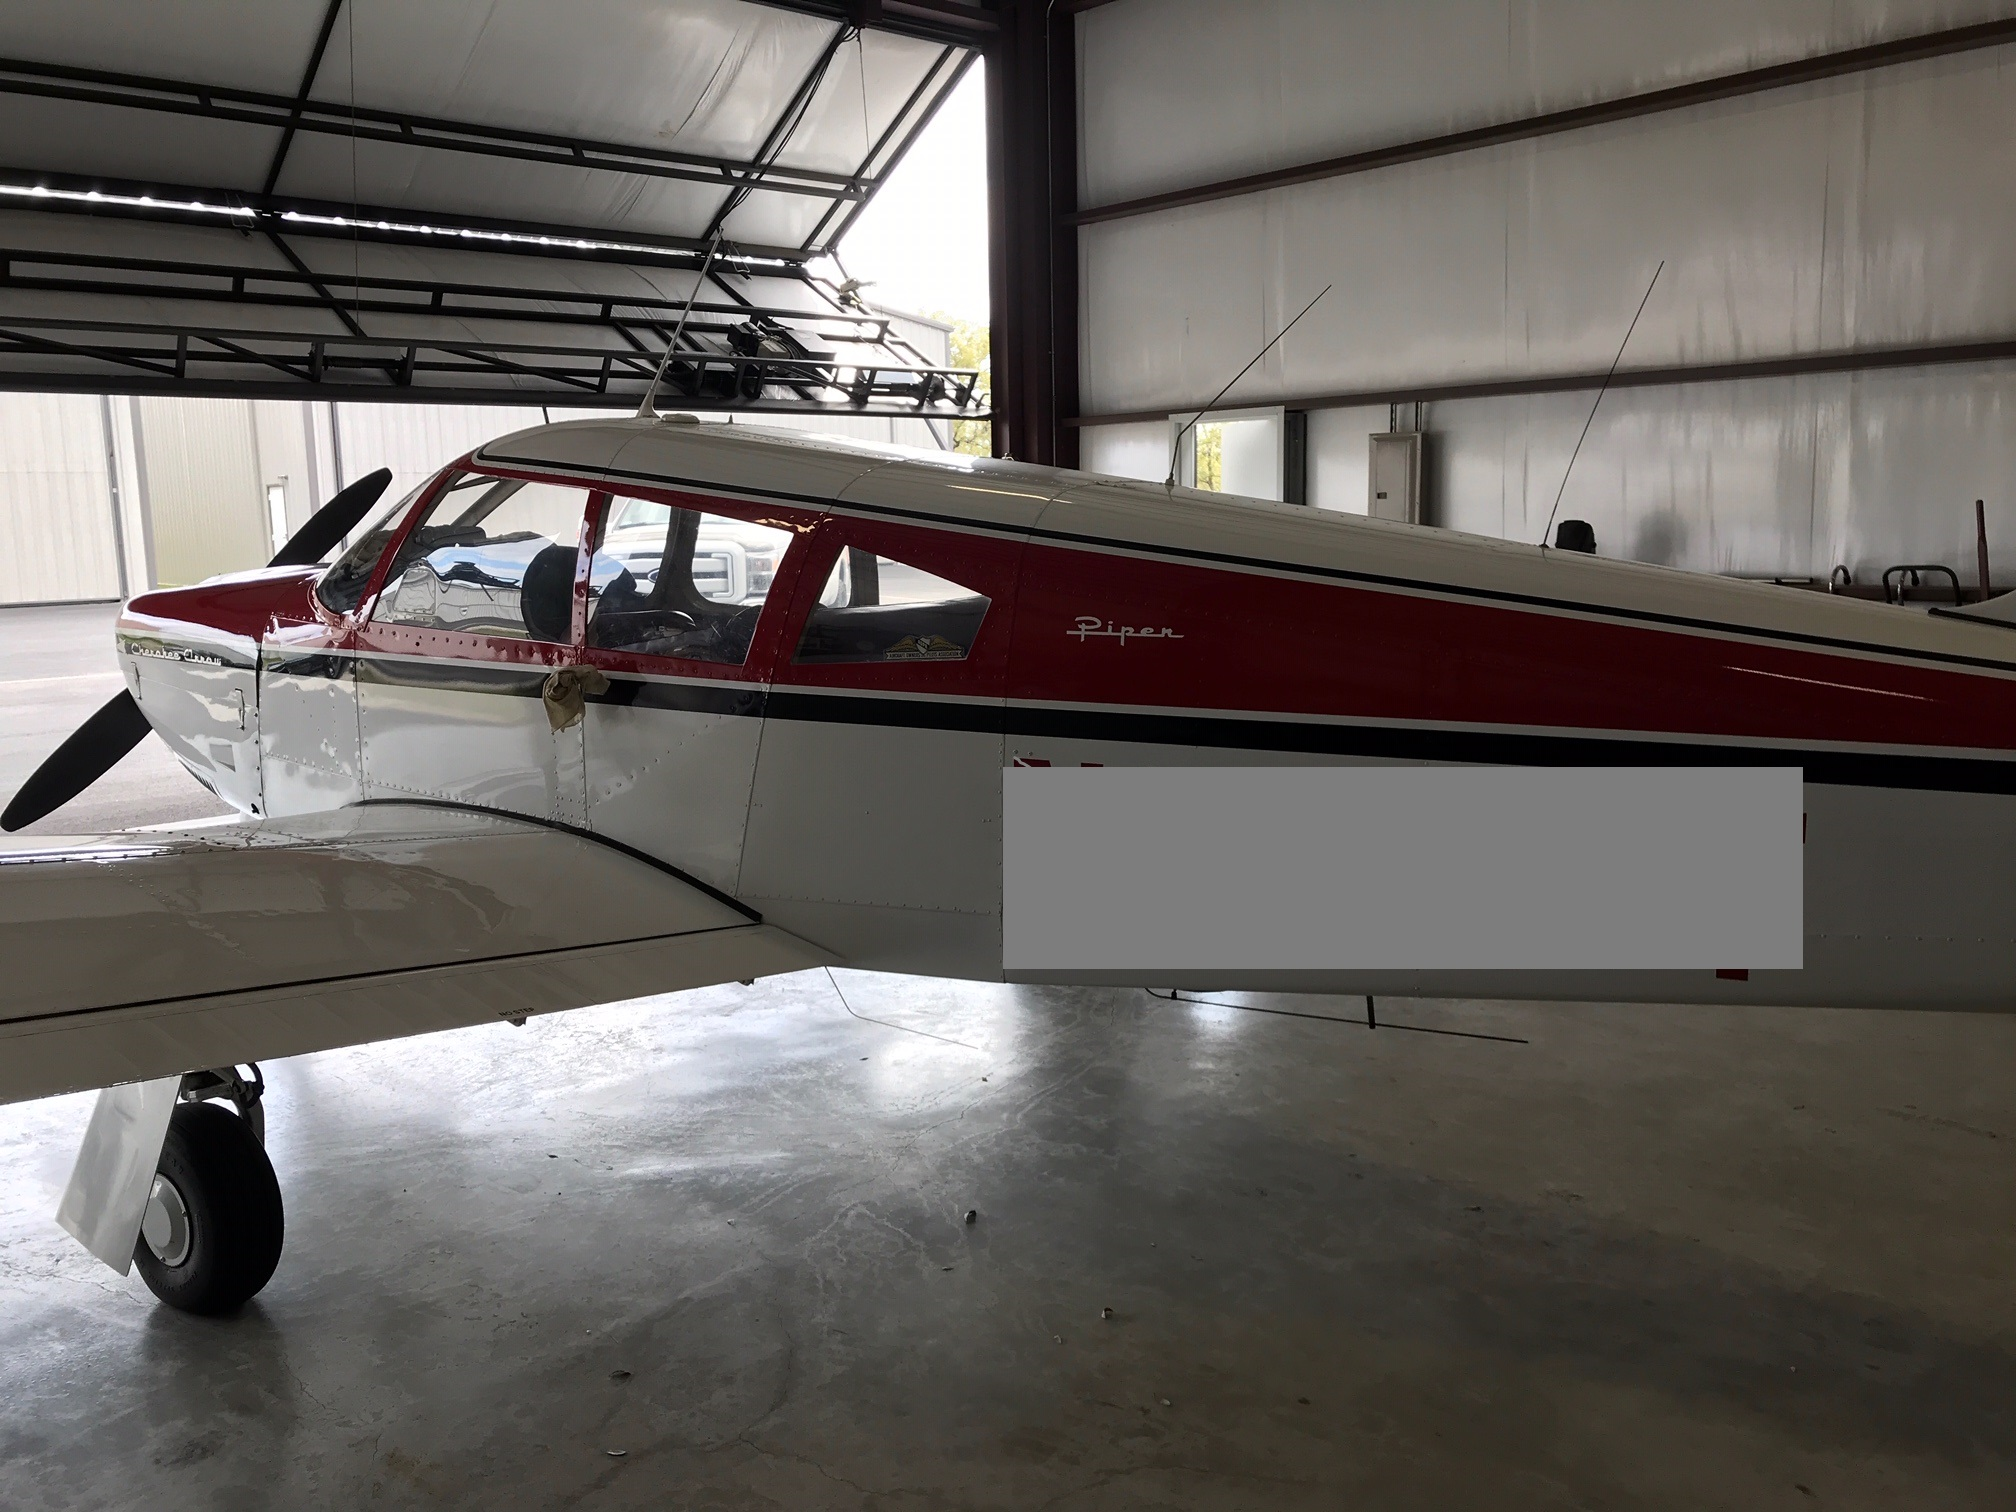 Cherokee Classic piper 1967 for sale